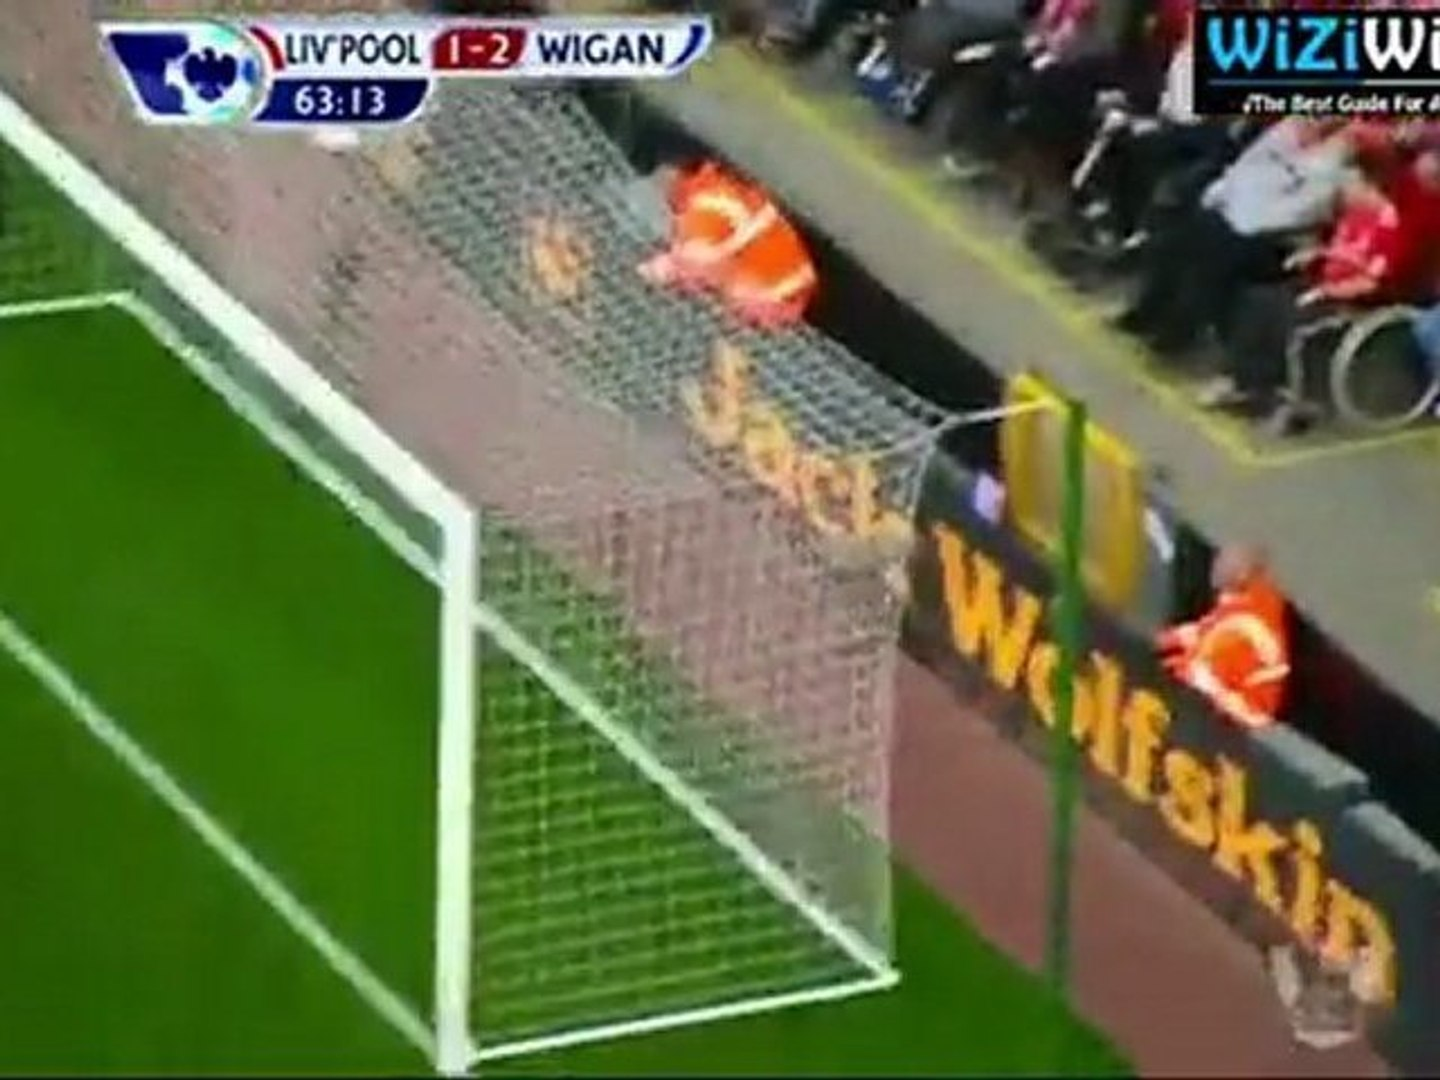 Gary Caldwell CRAZY goal against Liverpool 1-2!